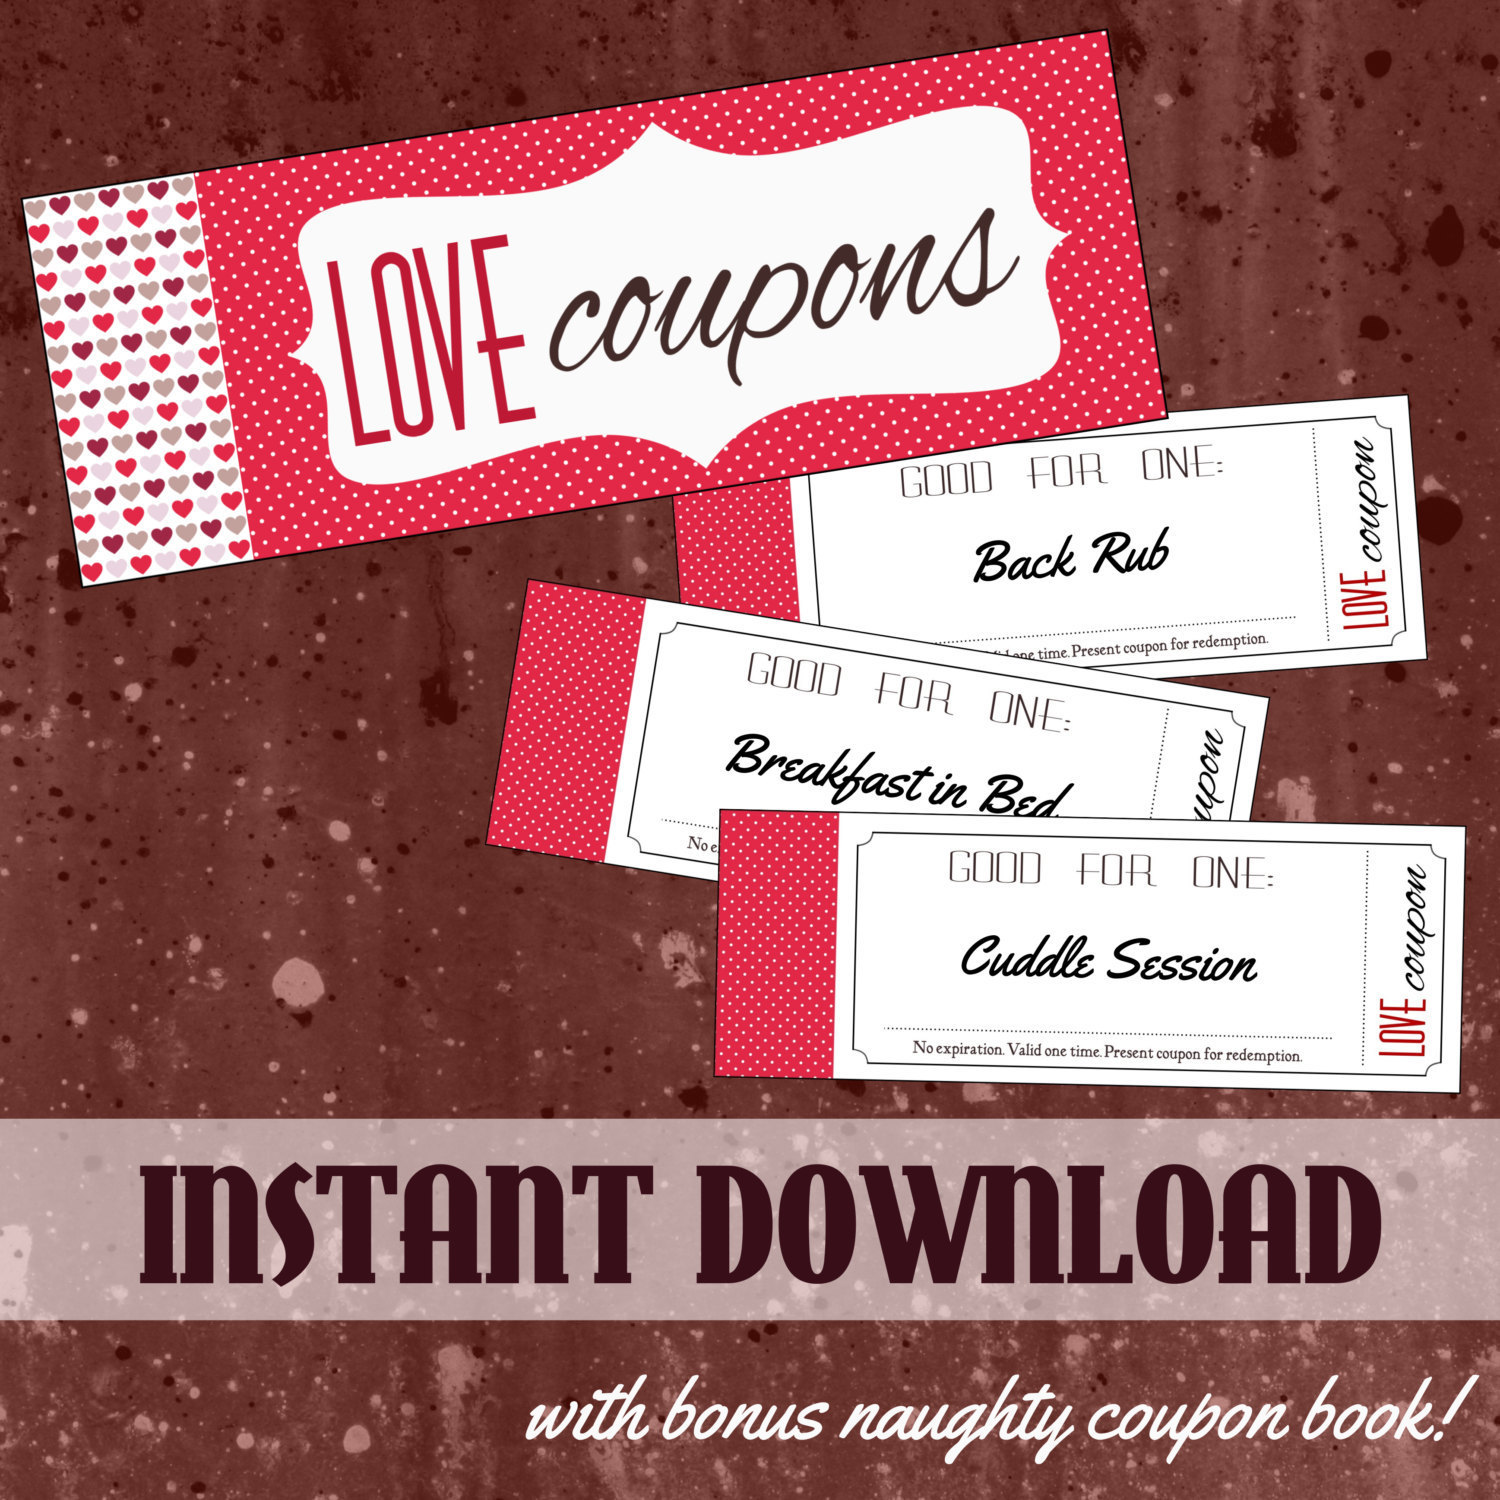 Sexual coupon book for boyfriend